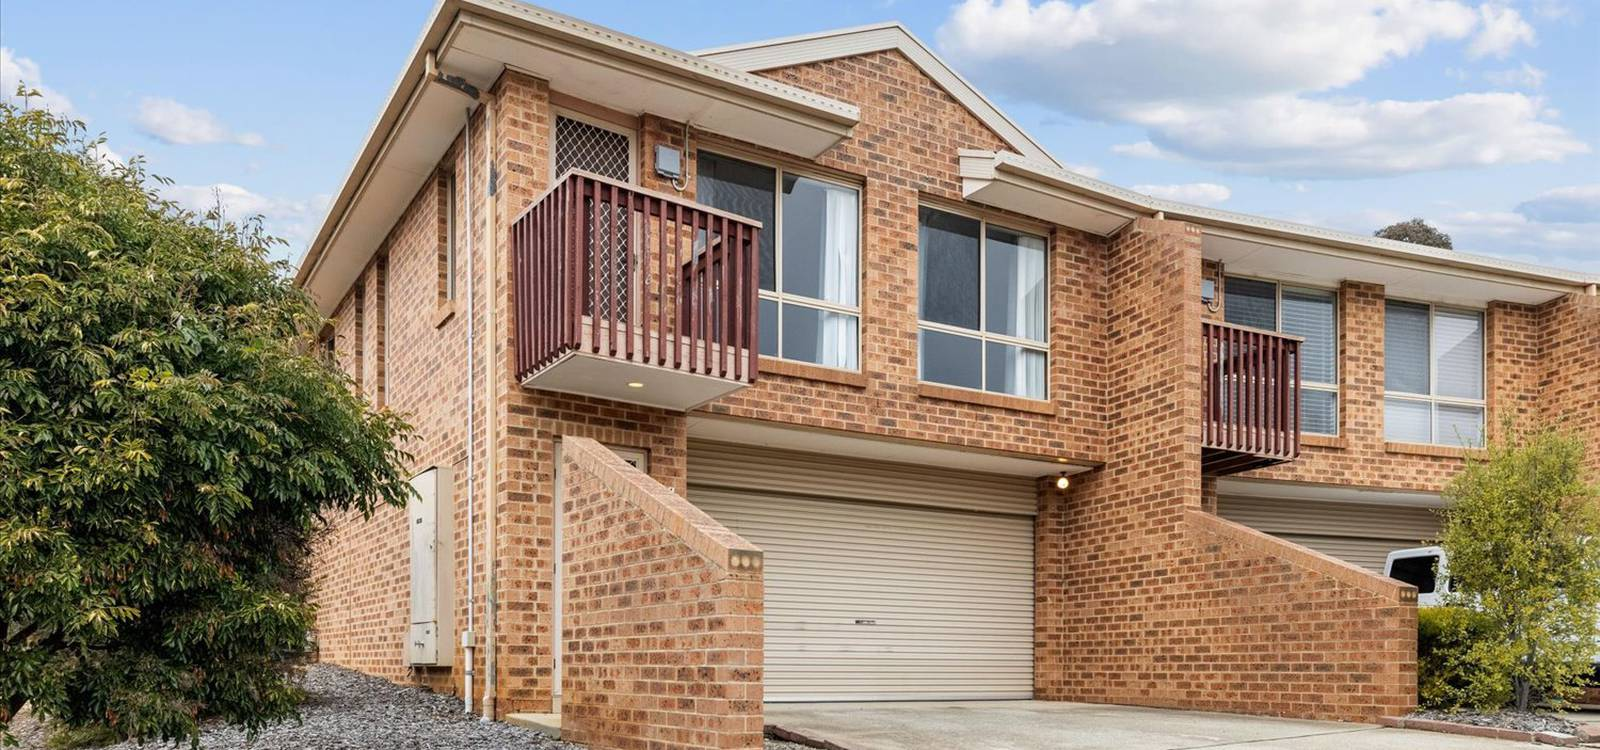 1/3 Winchester Place QUEANBEYAN, NSW 2620 - photo 1